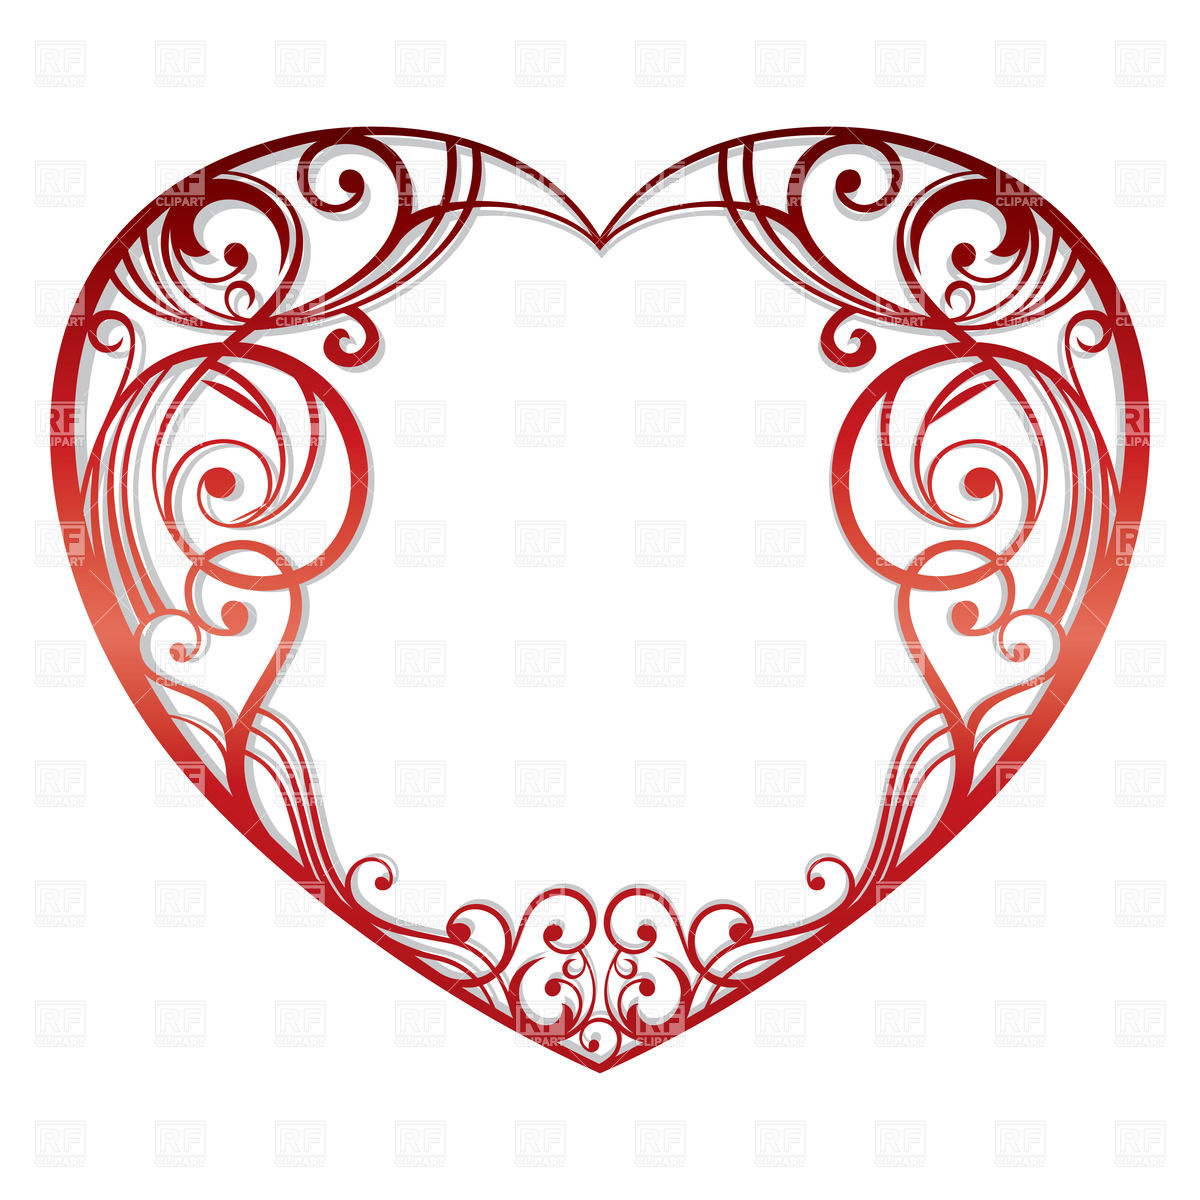 1200x1200 Ornate Heart Silhouette Royalty Free Vector Clip Art Image